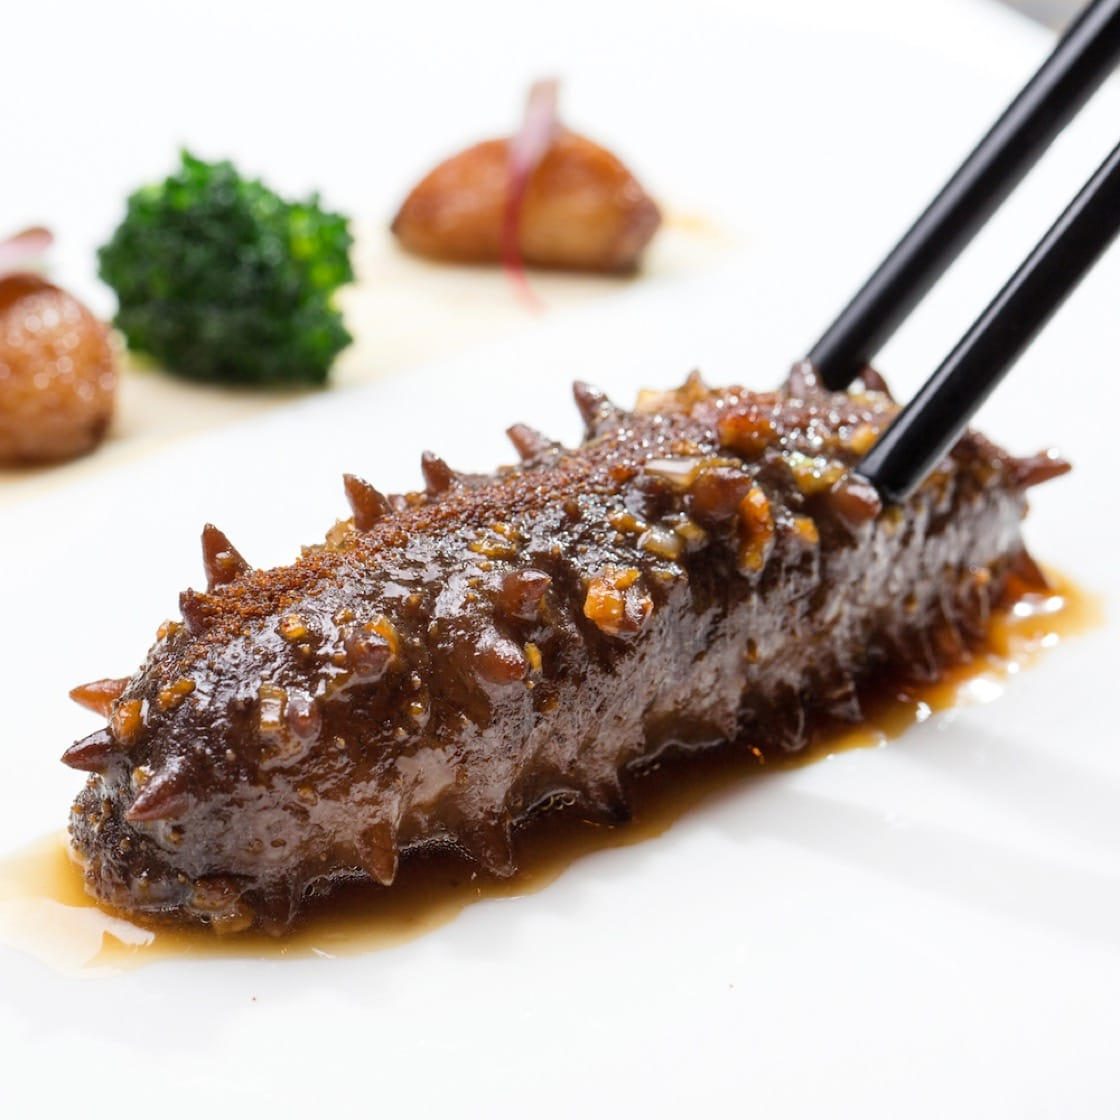 MOTPE - 蝦籽爆關東遼參Japanese Sea Cucumber Shrip Roe Wok-fried-cropped.jpg